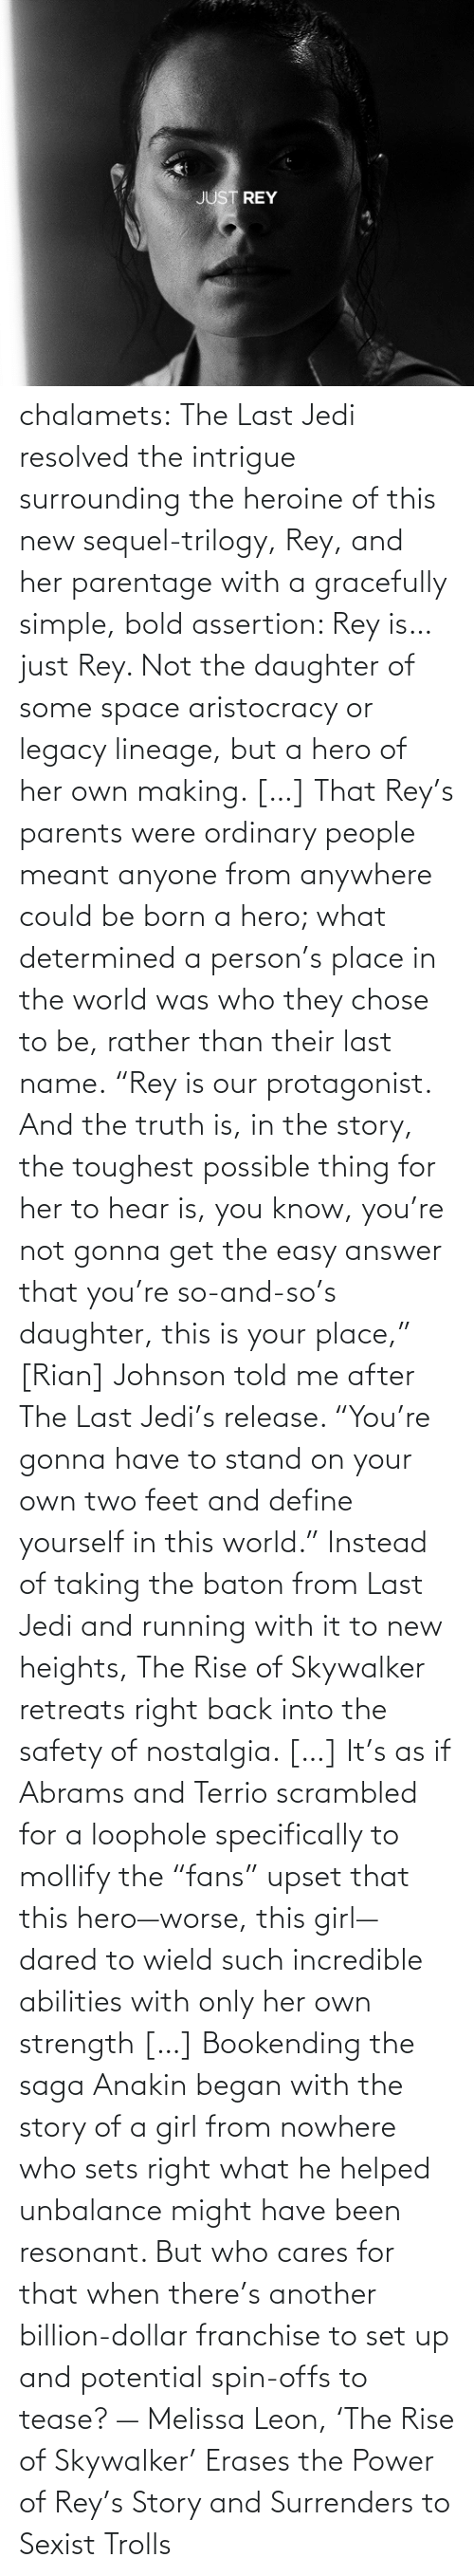 "her: chalamets:  The Last Jedi resolved the intrigue surrounding the heroine of this new sequel-trilogy, Rey, and her parentage with a gracefully simple, bold assertion: Rey is… just Rey. Not the daughter of some space aristocracy or legacy lineage, but a hero of her own making. […] That Rey's parents were ordinary people meant anyone from anywhere could be born a hero; what determined a person's place in the world was who they chose to be, rather than their last name. ""Rey is our protagonist. And the truth is, in the story, the toughest possible thing for her to hear is, you know, you're not gonna get the easy answer that you're so-and-so's daughter, this is your place,"" [Rian] Johnson told me after The Last Jedi's release. ""You're gonna have to stand on your own two feet and define yourself in this world."" Instead of taking the baton from Last Jedi and running with it to new heights, The Rise of Skywalker retreats right back into the safety of nostalgia. […] It's as if Abrams and Terrio scrambled for a loophole specifically to mollify the ""fans"" upset that this hero—worse, this girl—dared to wield such incredible abilities with only her own strength […] Bookending the saga Anakin began with the story of a girl from nowhere who sets right what he helped unbalance might have been resonant. But who cares for that when there's another billion-dollar franchise to set up and potential spin-offs to tease? — Melissa Leon, 'The Rise of Skywalker' Erases the Power of Rey's Story and Surrenders to Sexist Trolls"